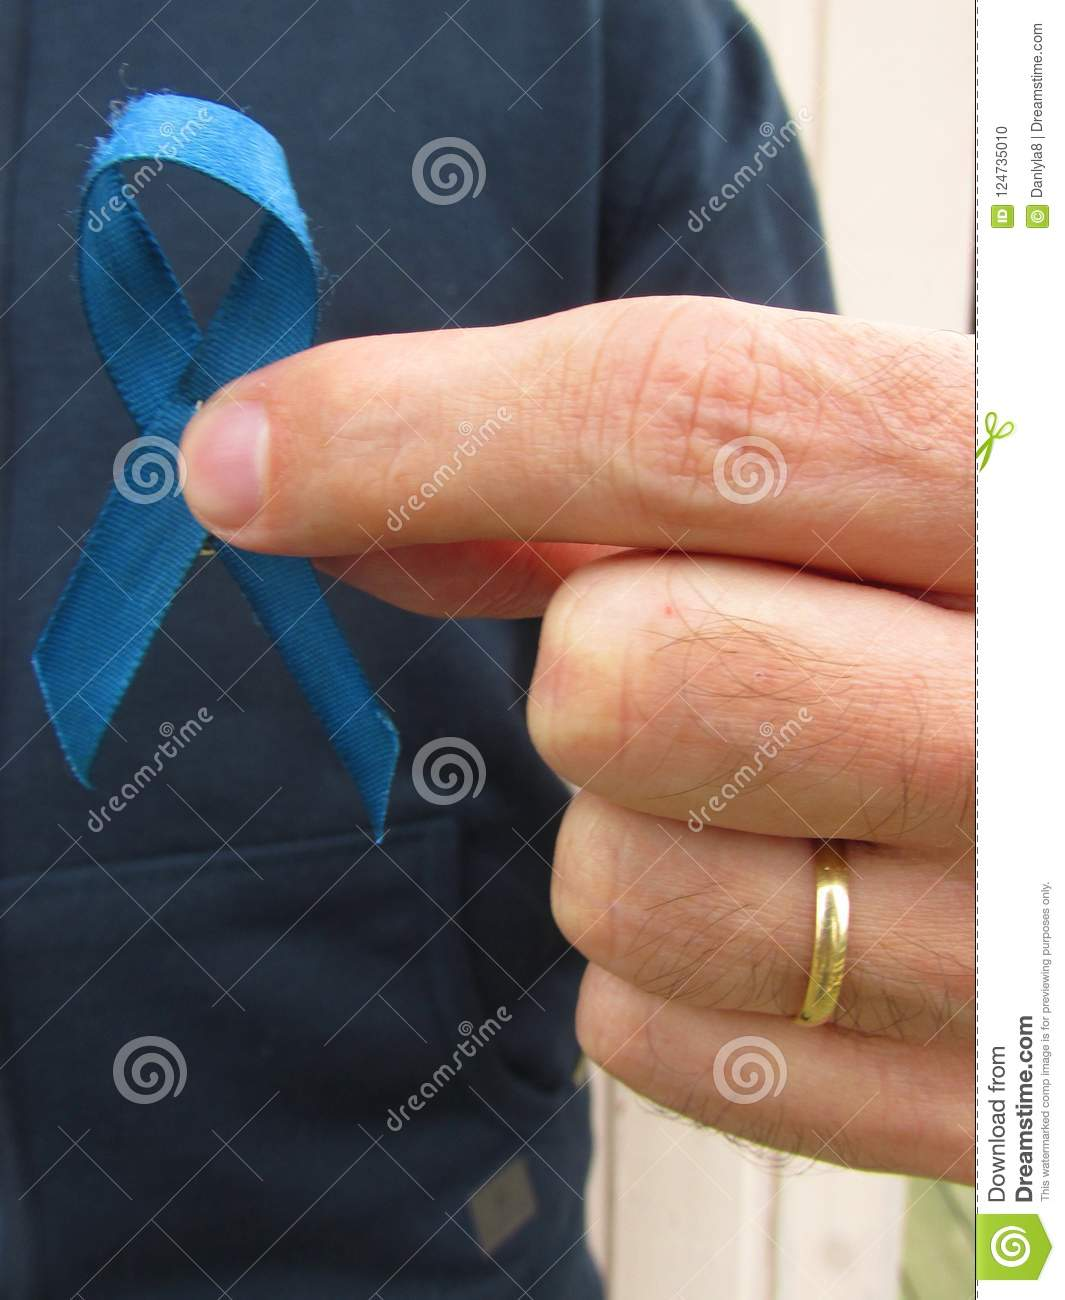 Blue ribbon for prostate cancer awareness campaign